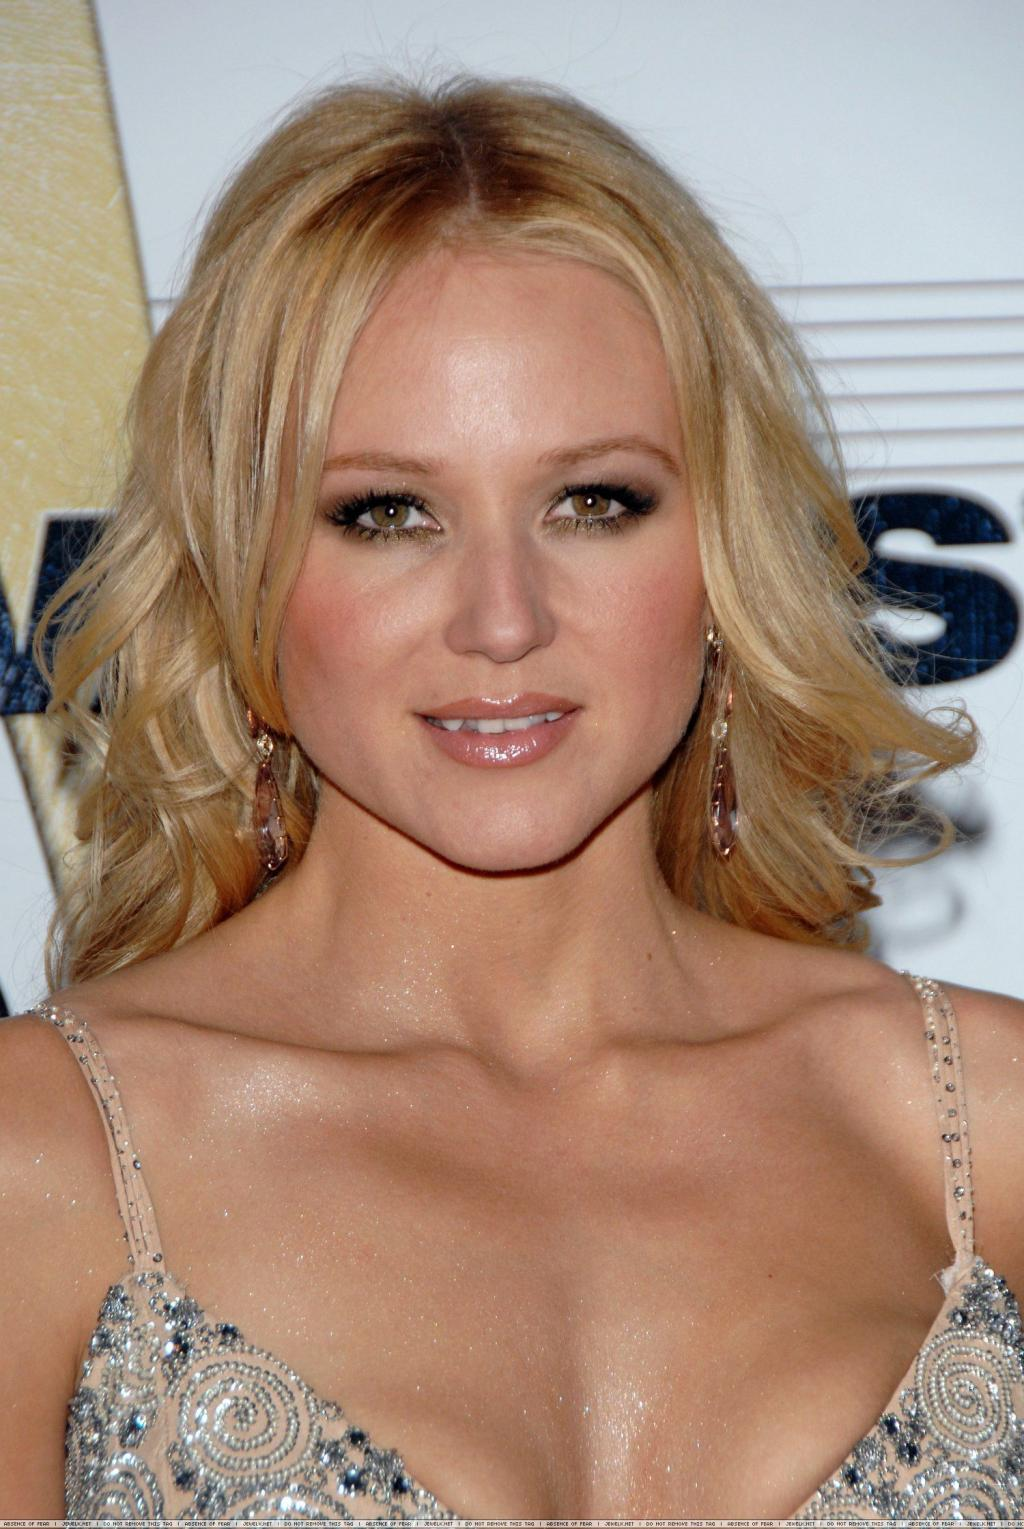 Jewel Kilcher Photo Gallery - 50 High Quality Pics Of Jewel Kilcher